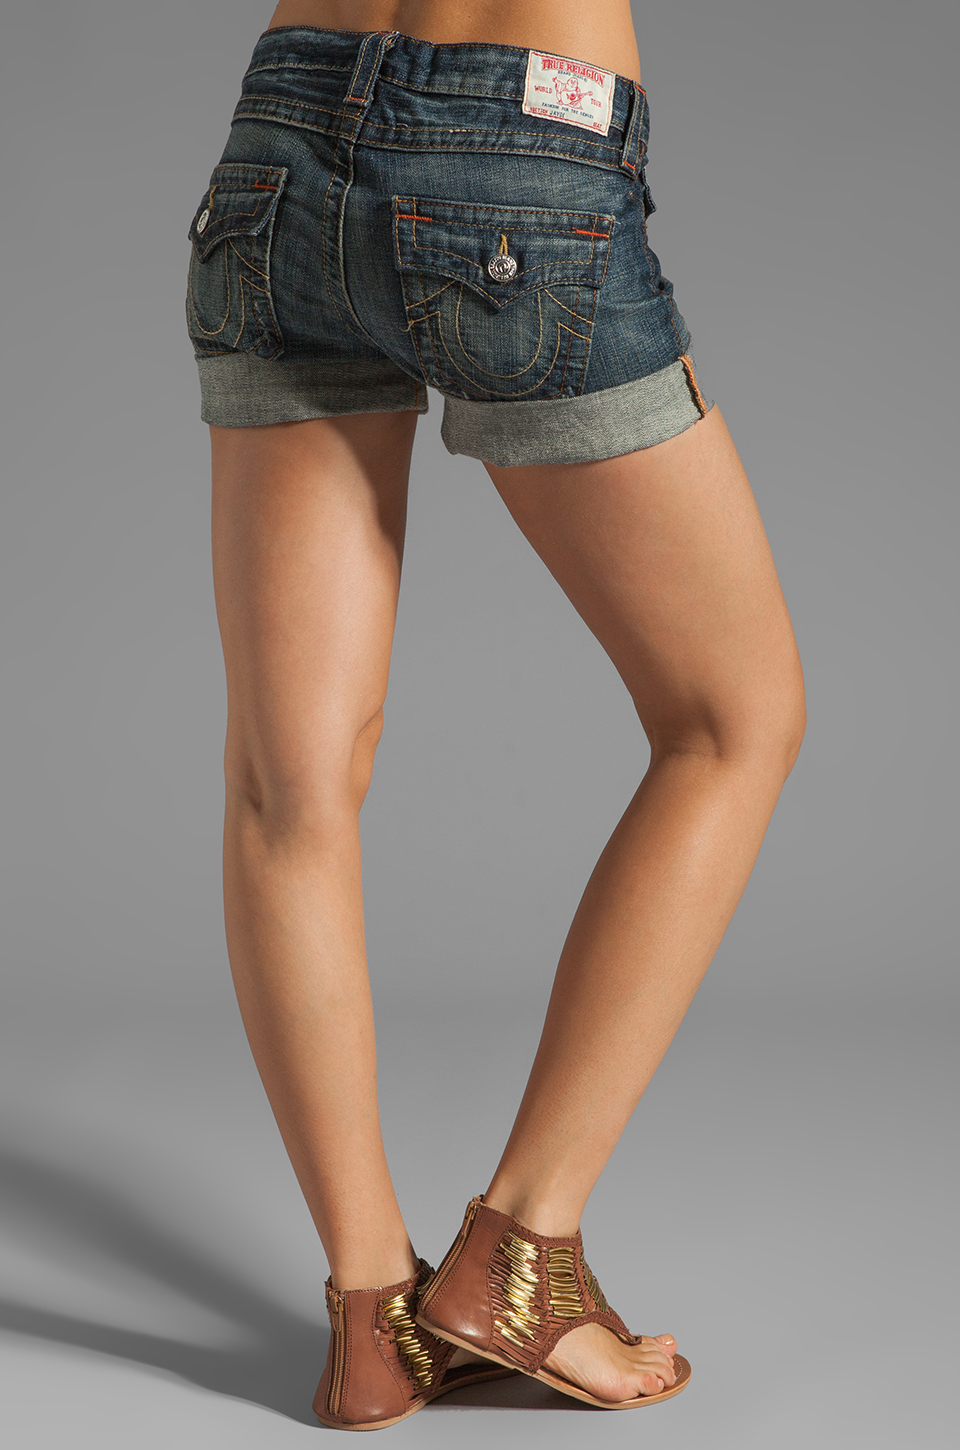 True Religion Jayde Boyfriend Shorts in Granite